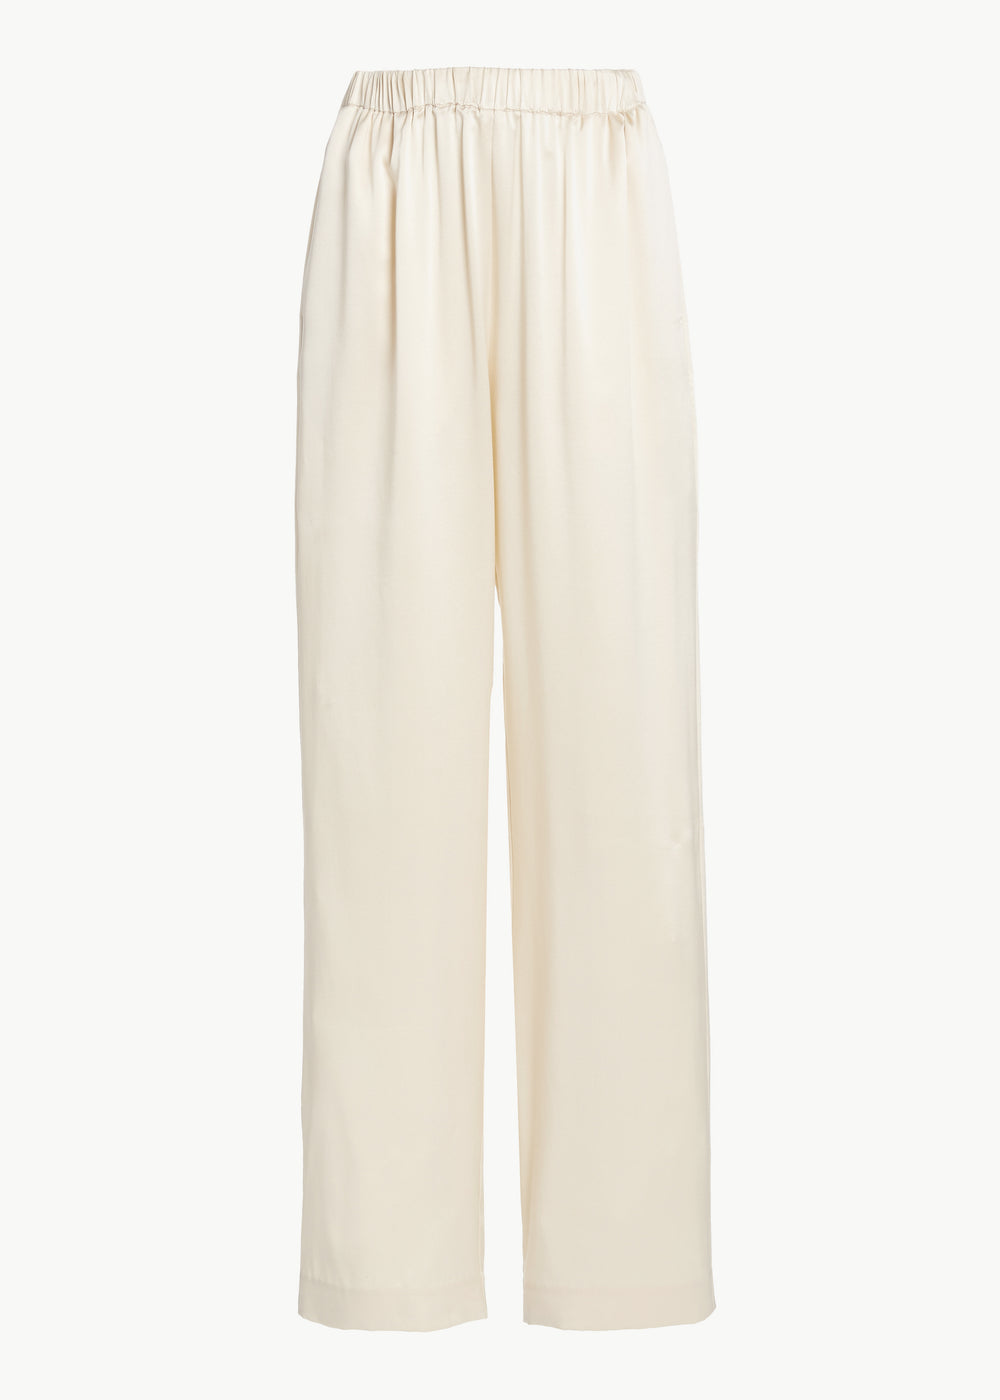 Elastic Waistband Pant in Silk Charmeuse - Ivory - CO